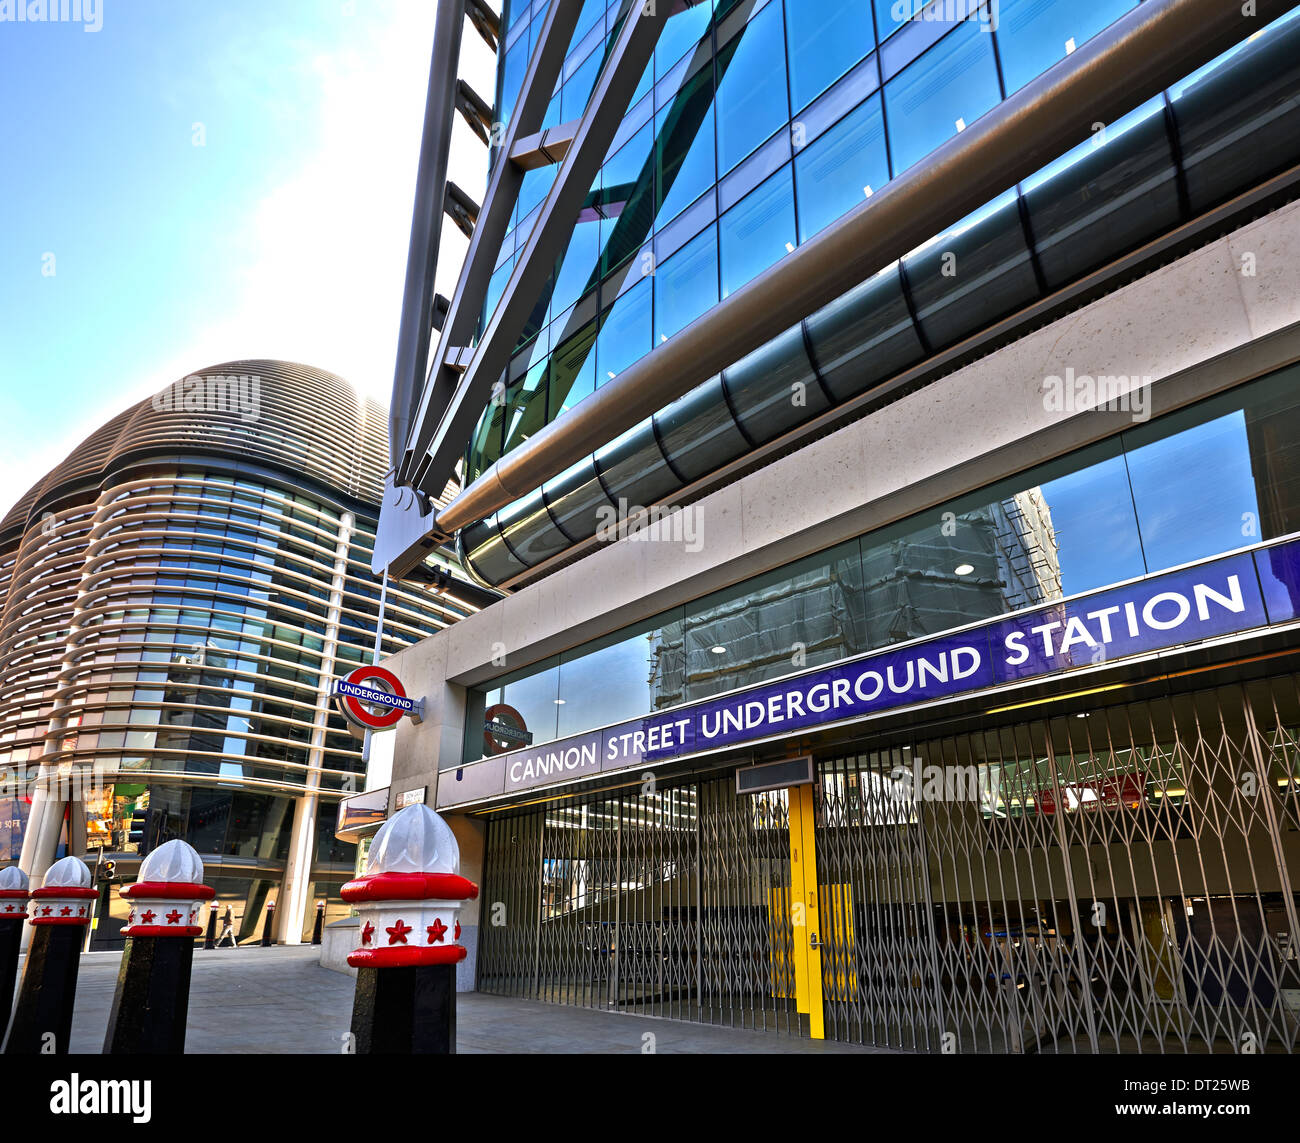 Cannon Street station, also known as London Cannon Street or simply Cannon Street - Stock Image